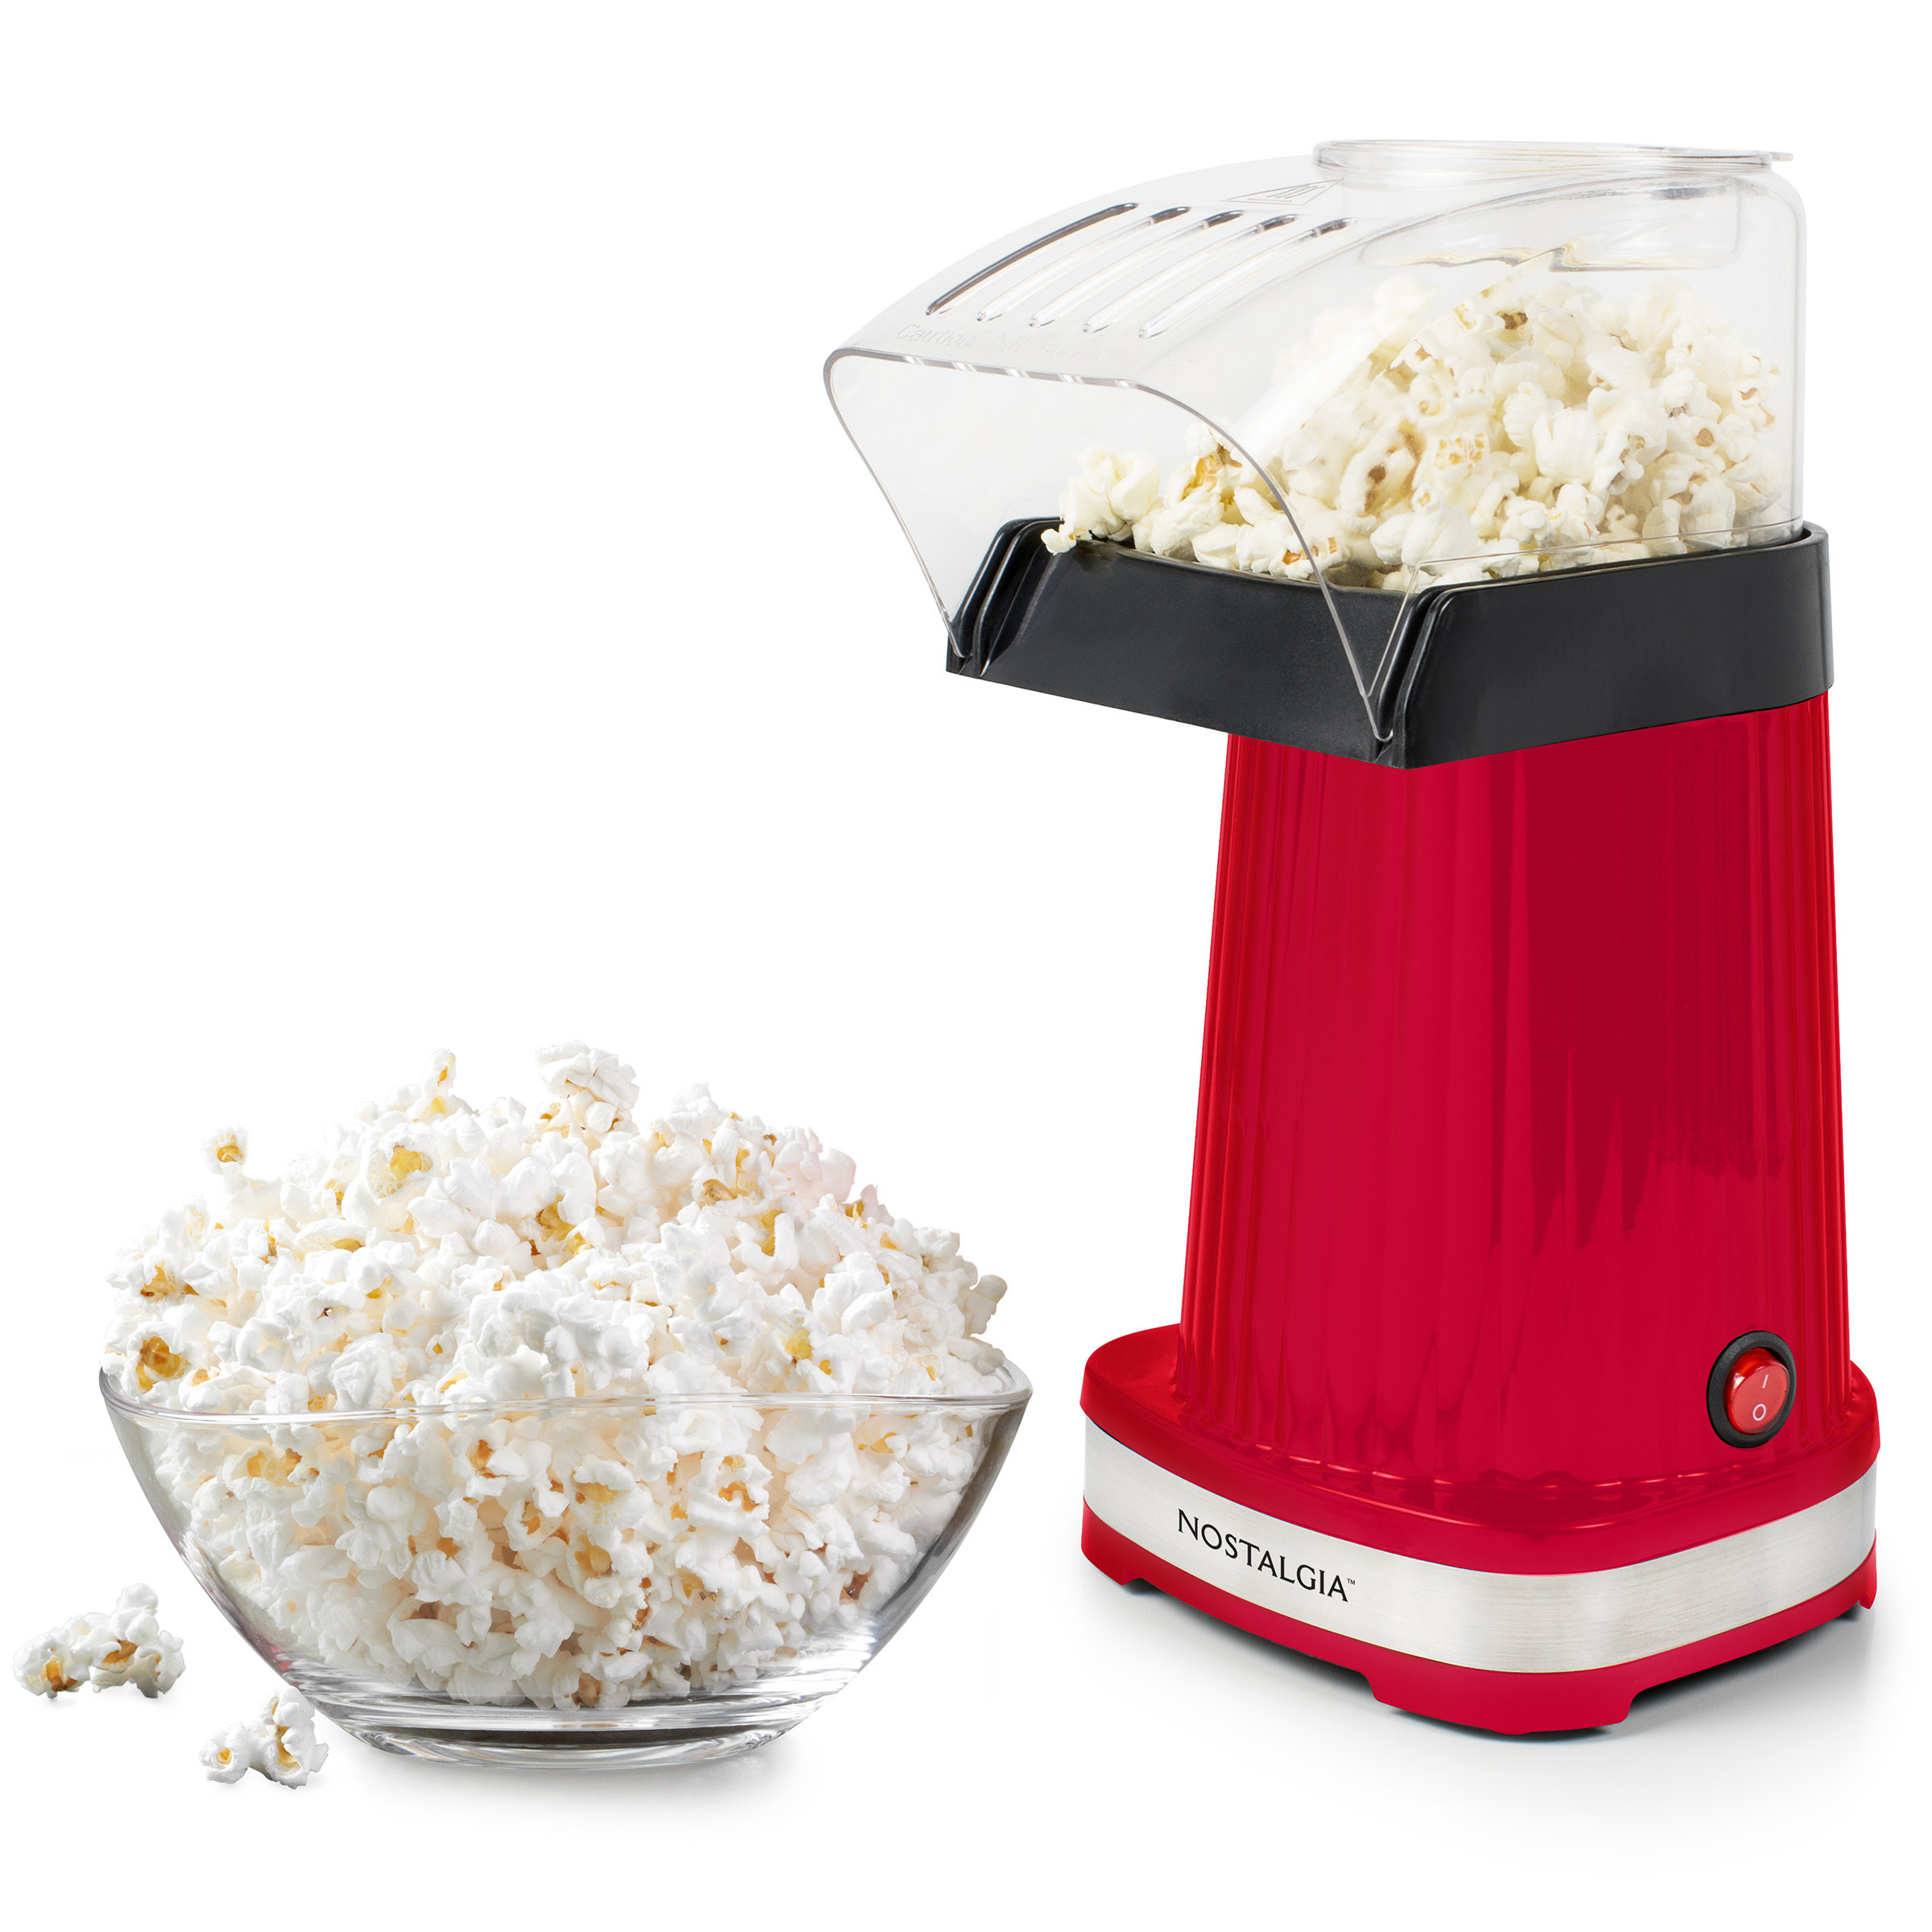 red nostalgia popcorn maker with popped popcorn in a bowl in front of it